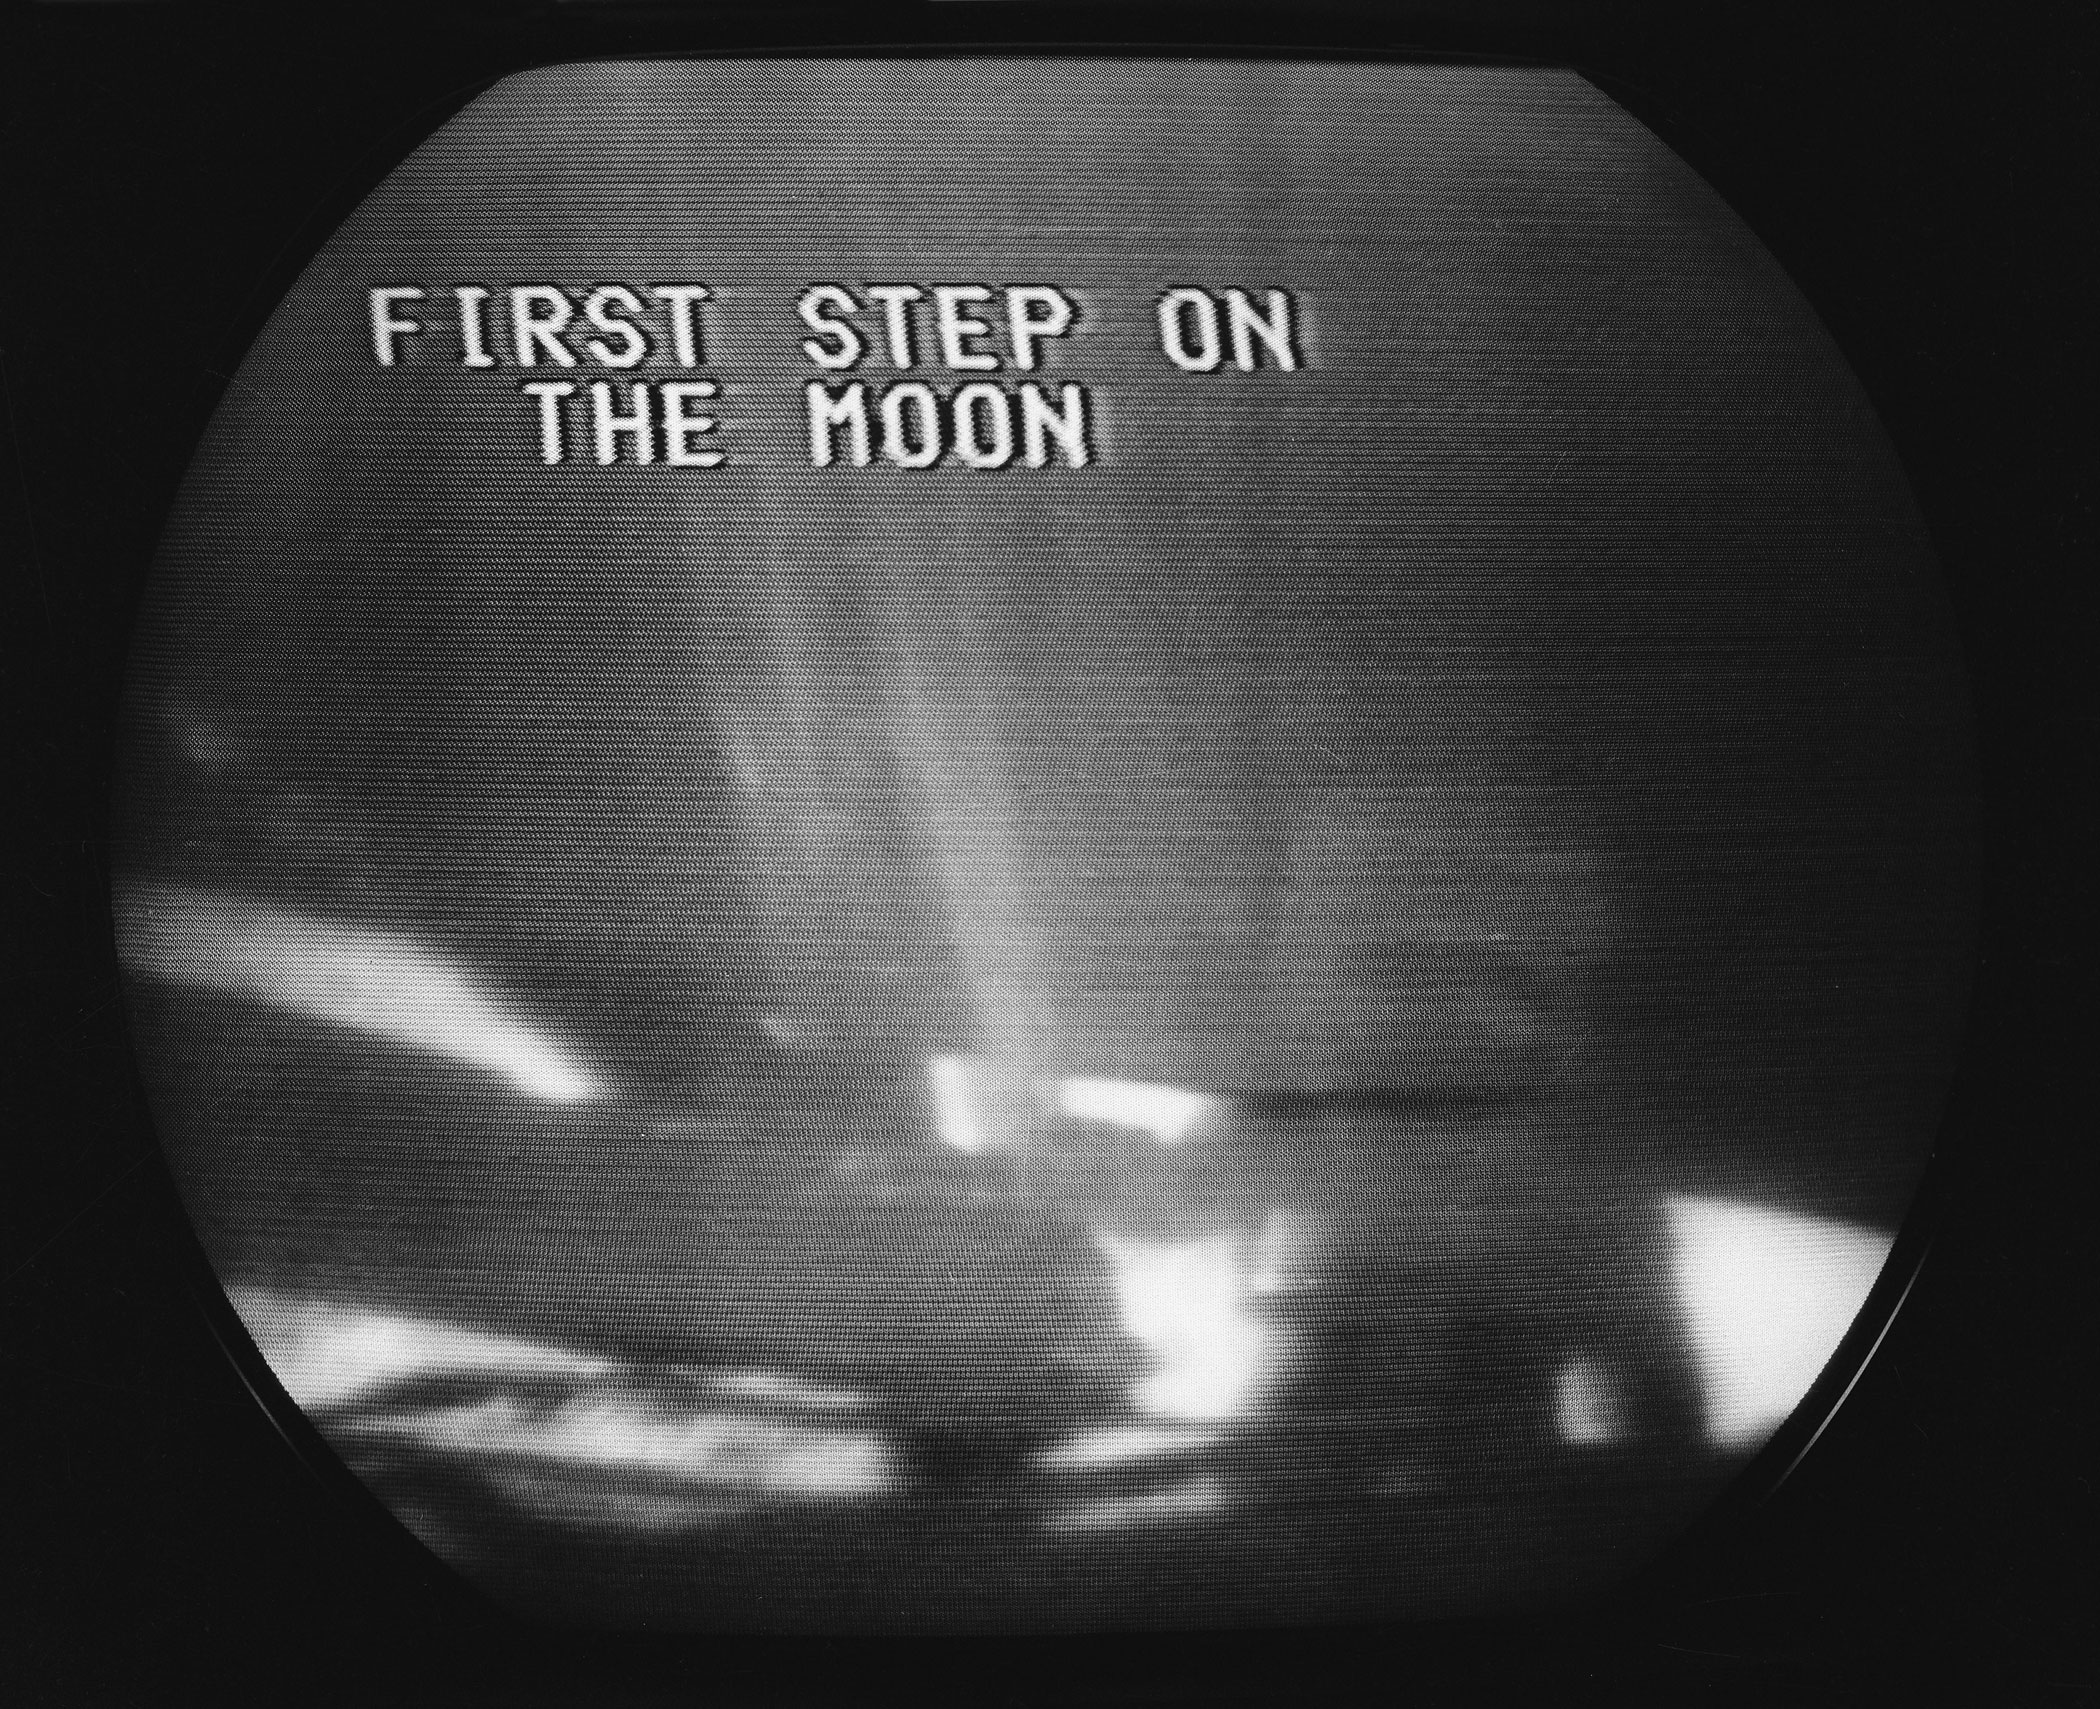 <b>First Steps on the Moon on Television, 1969</b>; Kinescope images of astronaut Commander Neil Armstrong taking the first steps on the moon during the Apollo 11 Space Mission's moon landing for the first time in history.